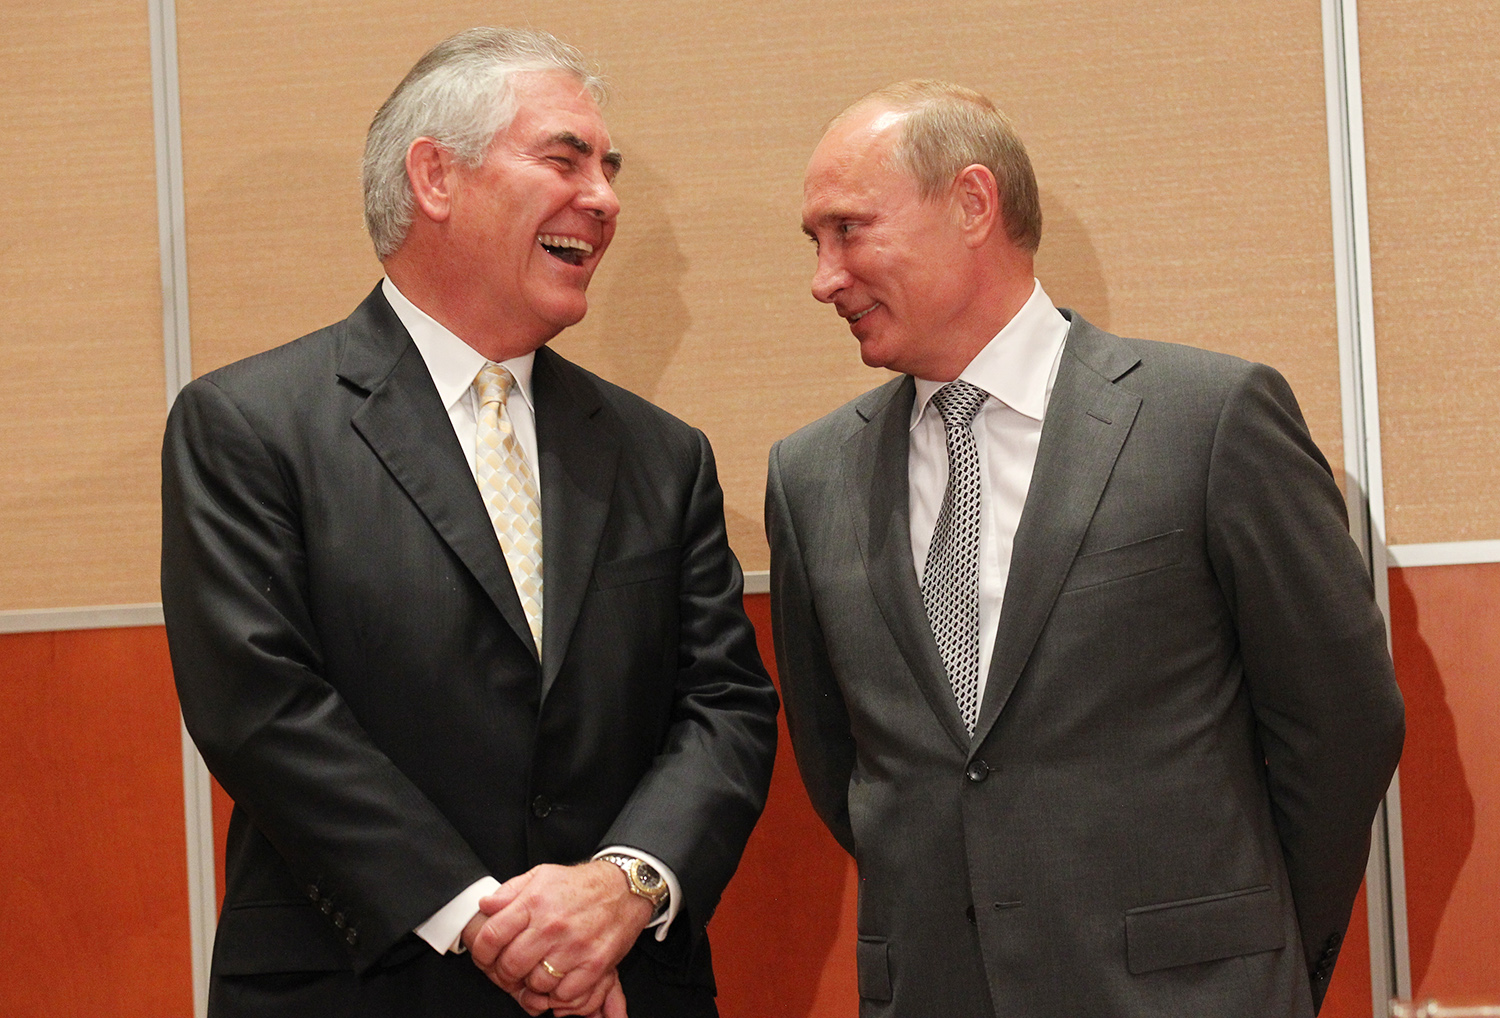 Russian President Vladimir Putin and Rex Tillerson, then-chairman and CEO of Exxon Mobil, attend a signing ceremony for an Arctic oil exploration deal between Exxon and Rosneft in Sochi, Russia, on Aug. 30, 2011.